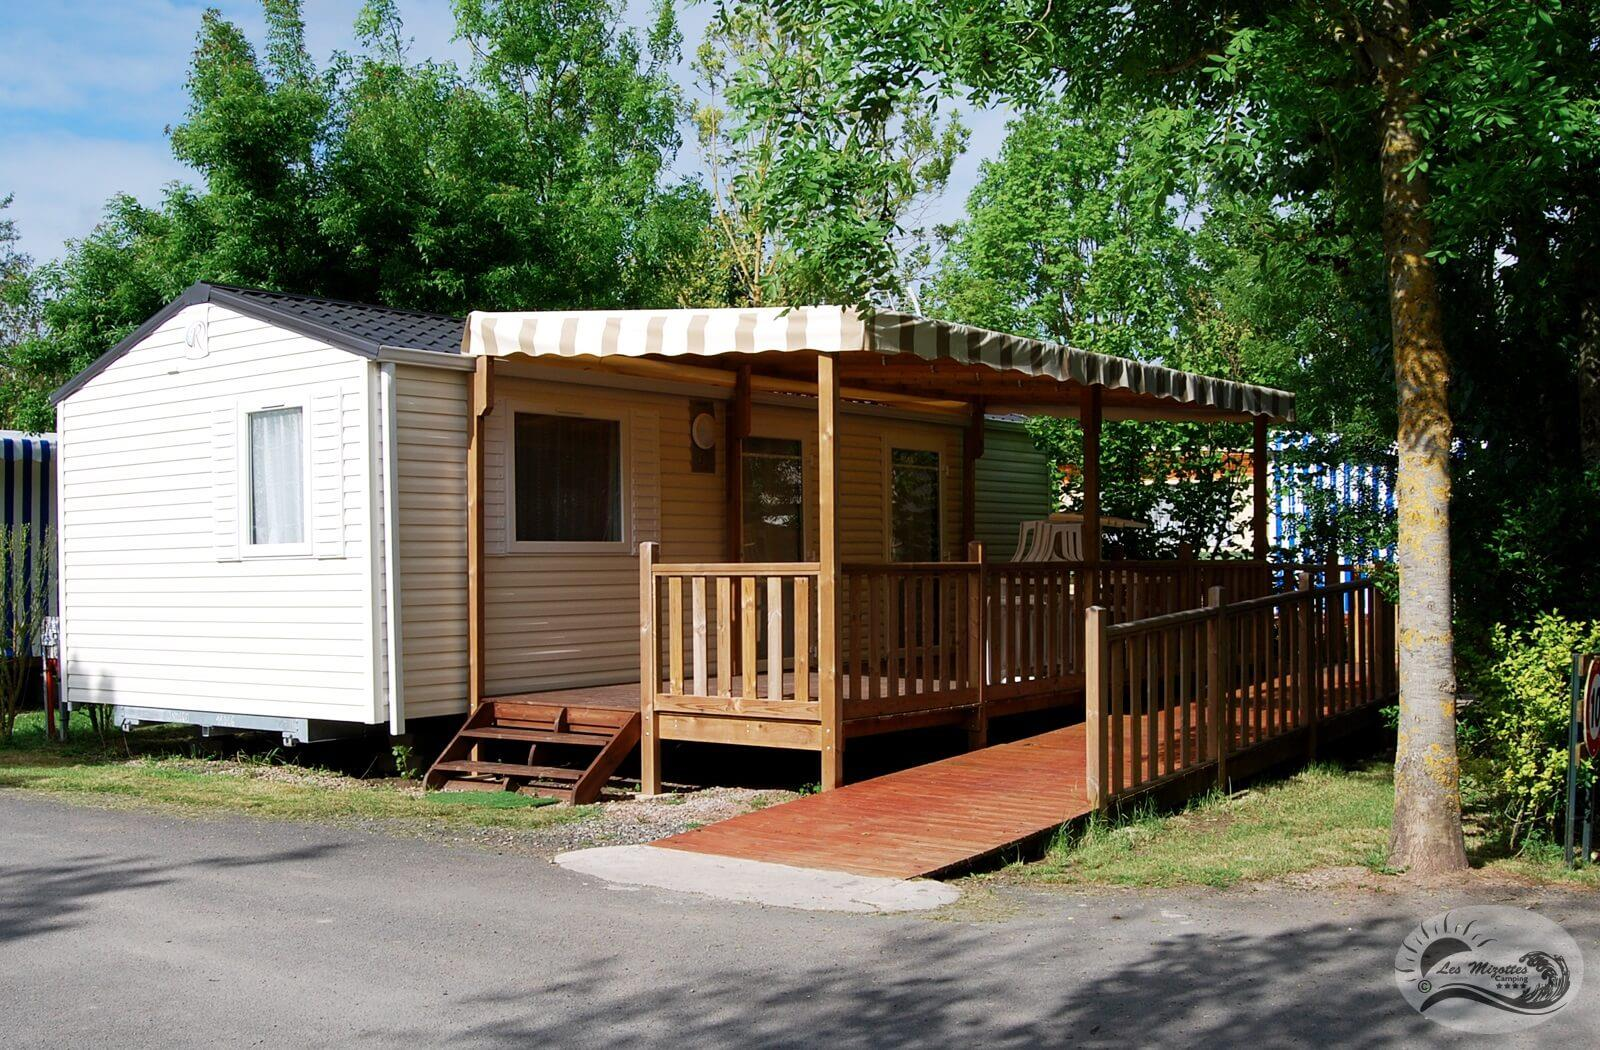 Location - Mobil-Home Pmr 2 Chambres 32 M² - Camping Les Mizottes